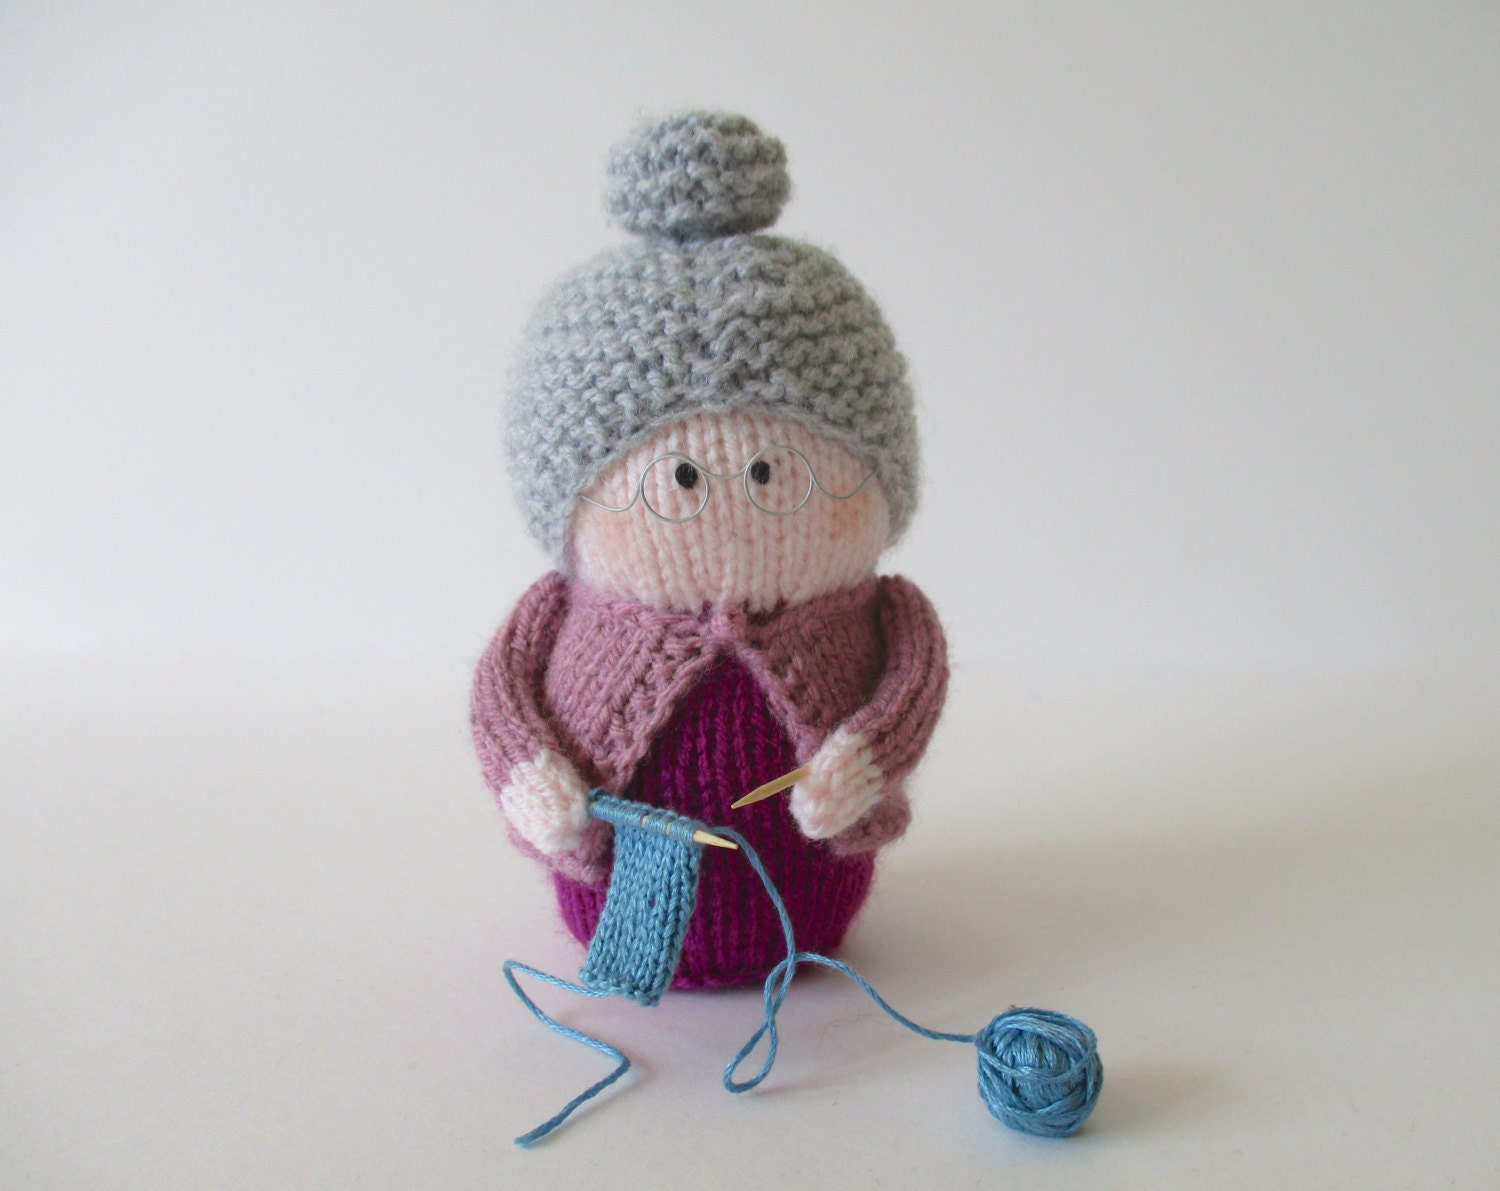 Grandma S Knitting Patterns : Granny toy doll knitting patterns from fluffandfuzz on